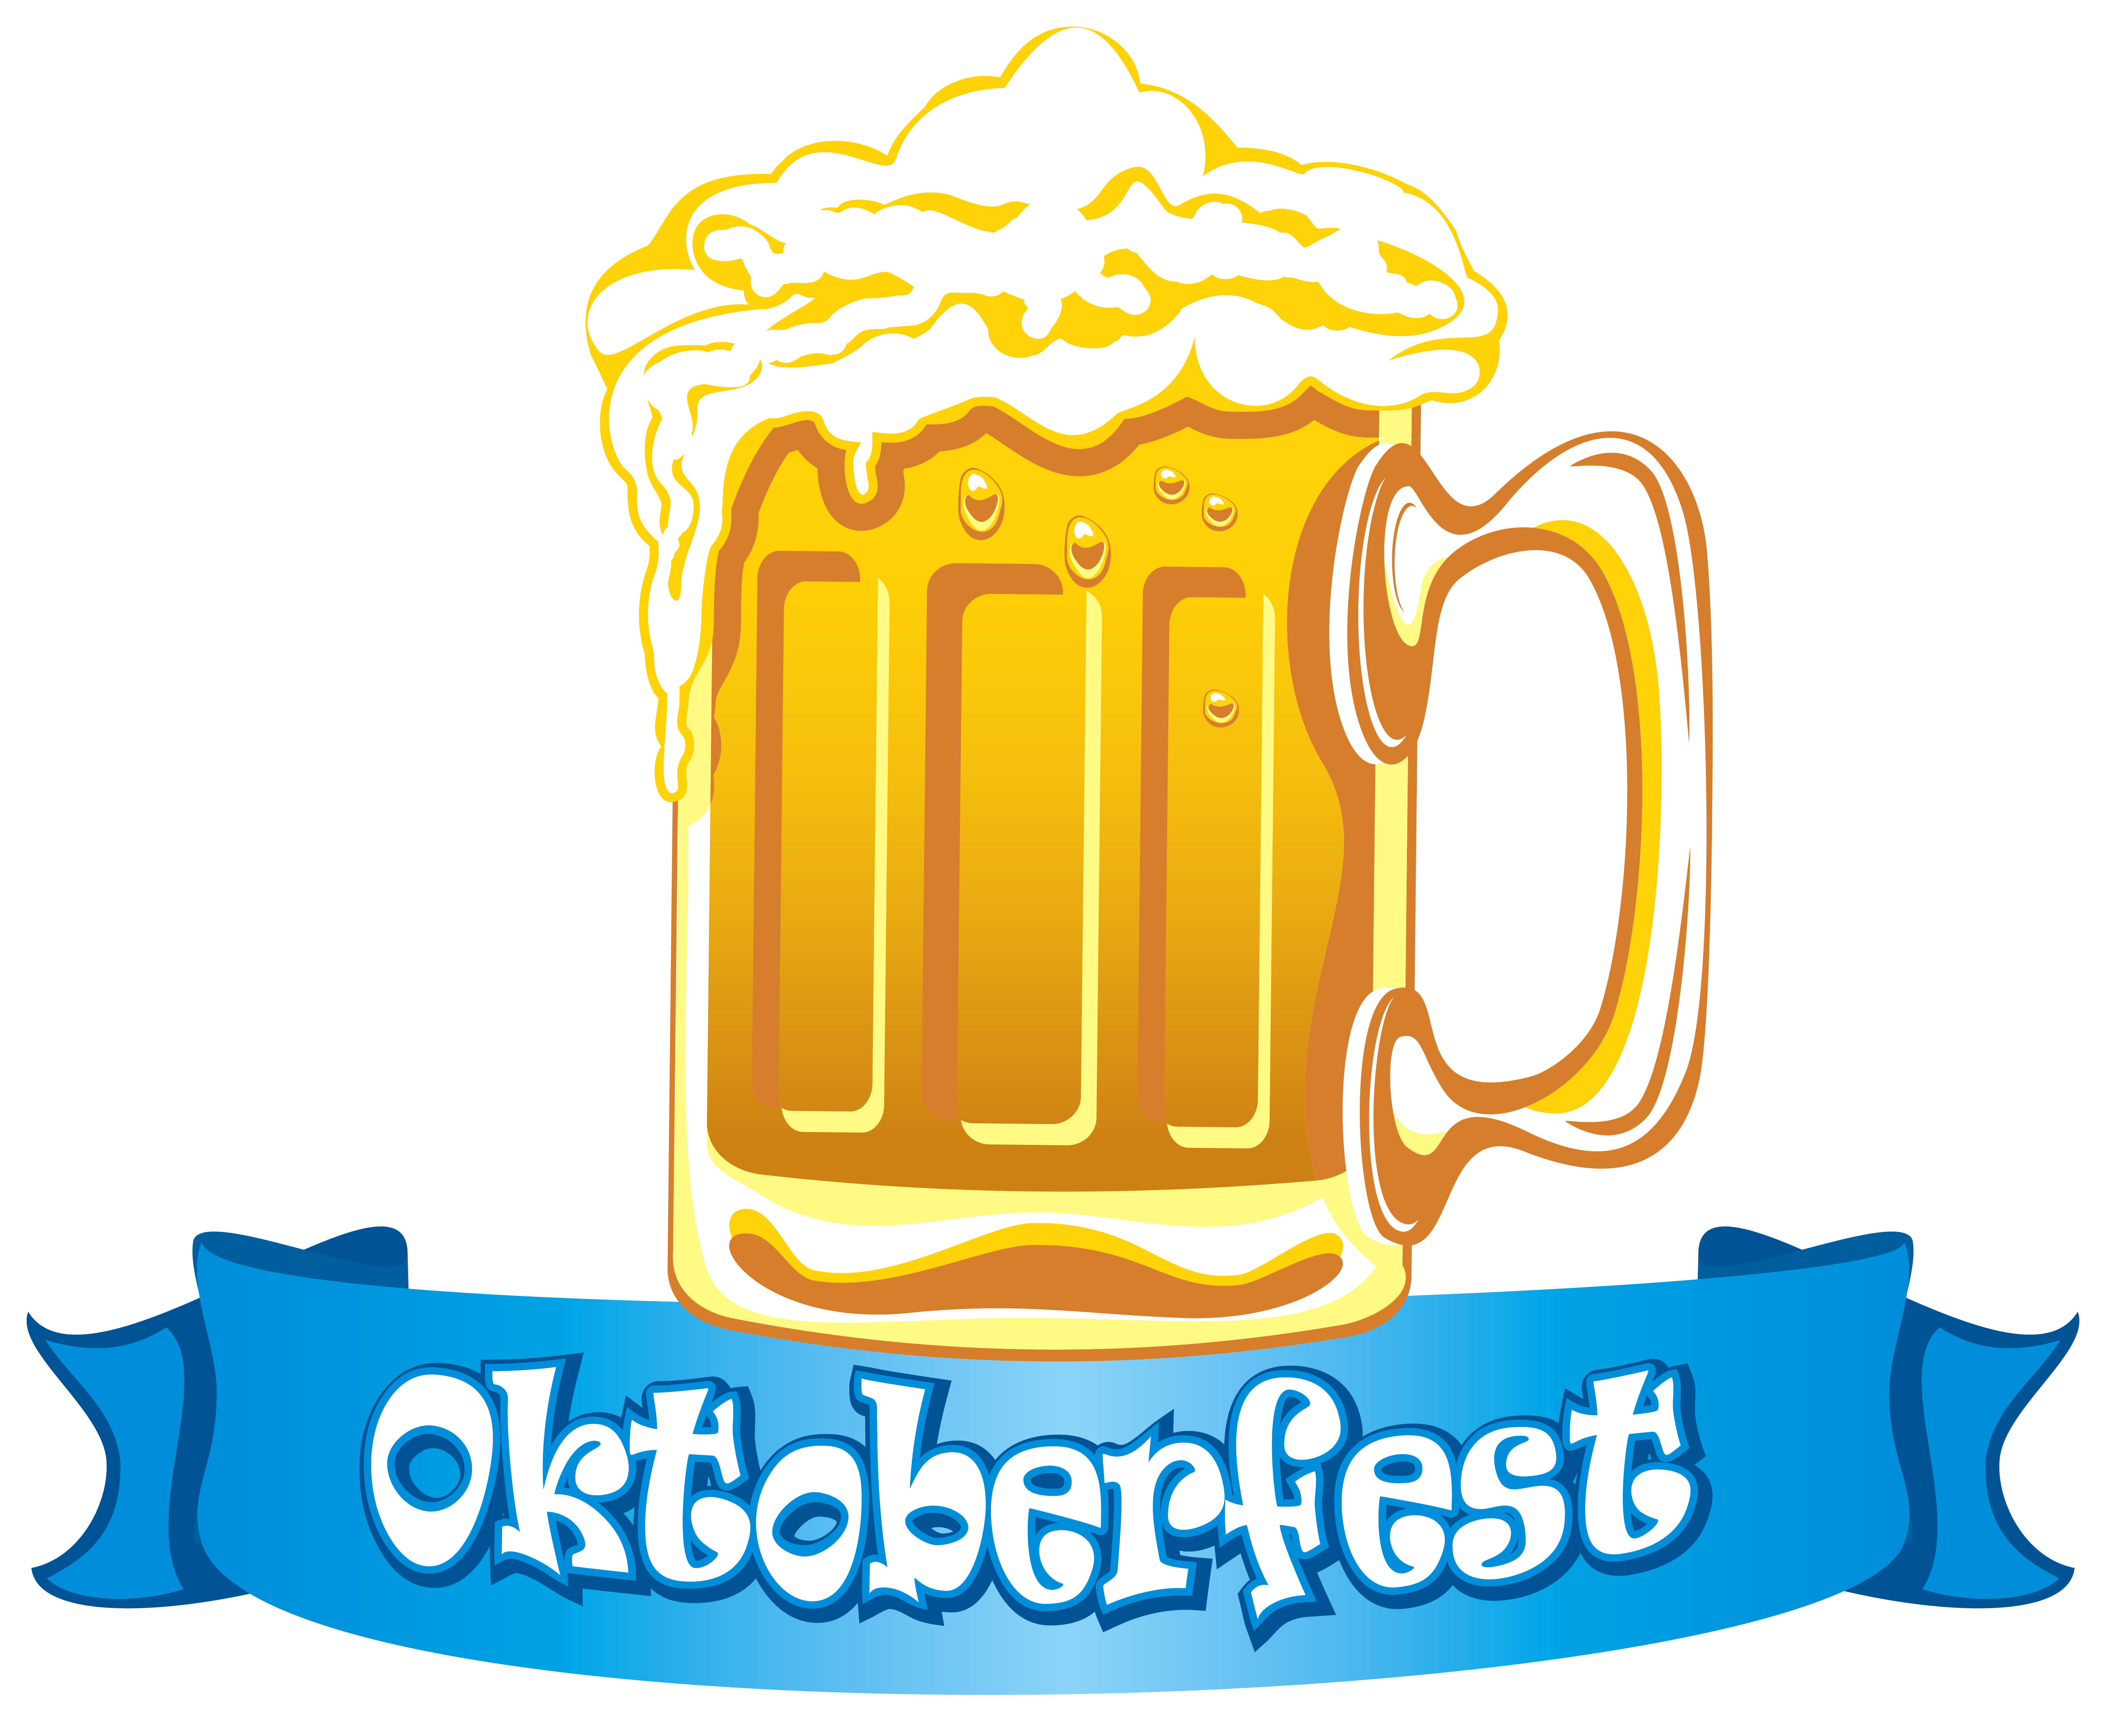 Oktoberfest clipart png svg royalty free library Oktoberfest Banner with Beer PNG Clipart Image | Gallery ... svg royalty free library